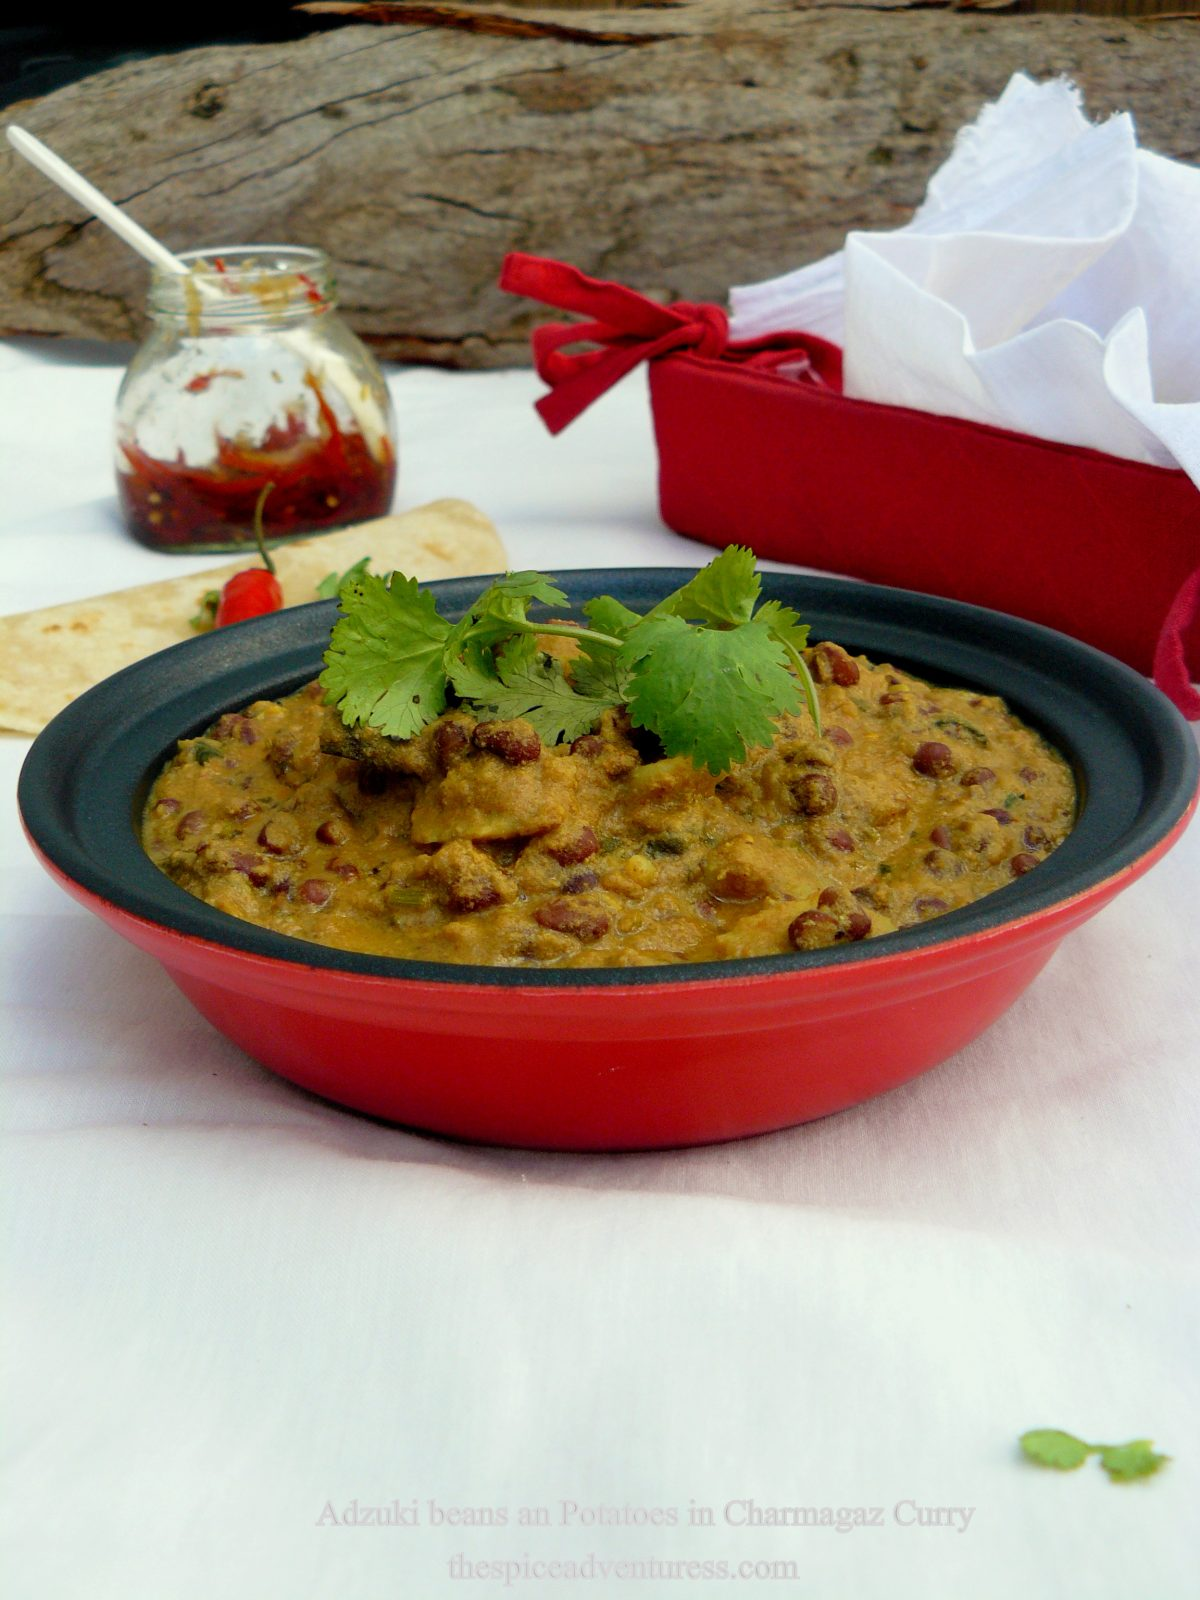 Adzuki Beans and Potatoes in Charmagaz Curry - a healthy vegetarian delight - thespiceadventuress.com